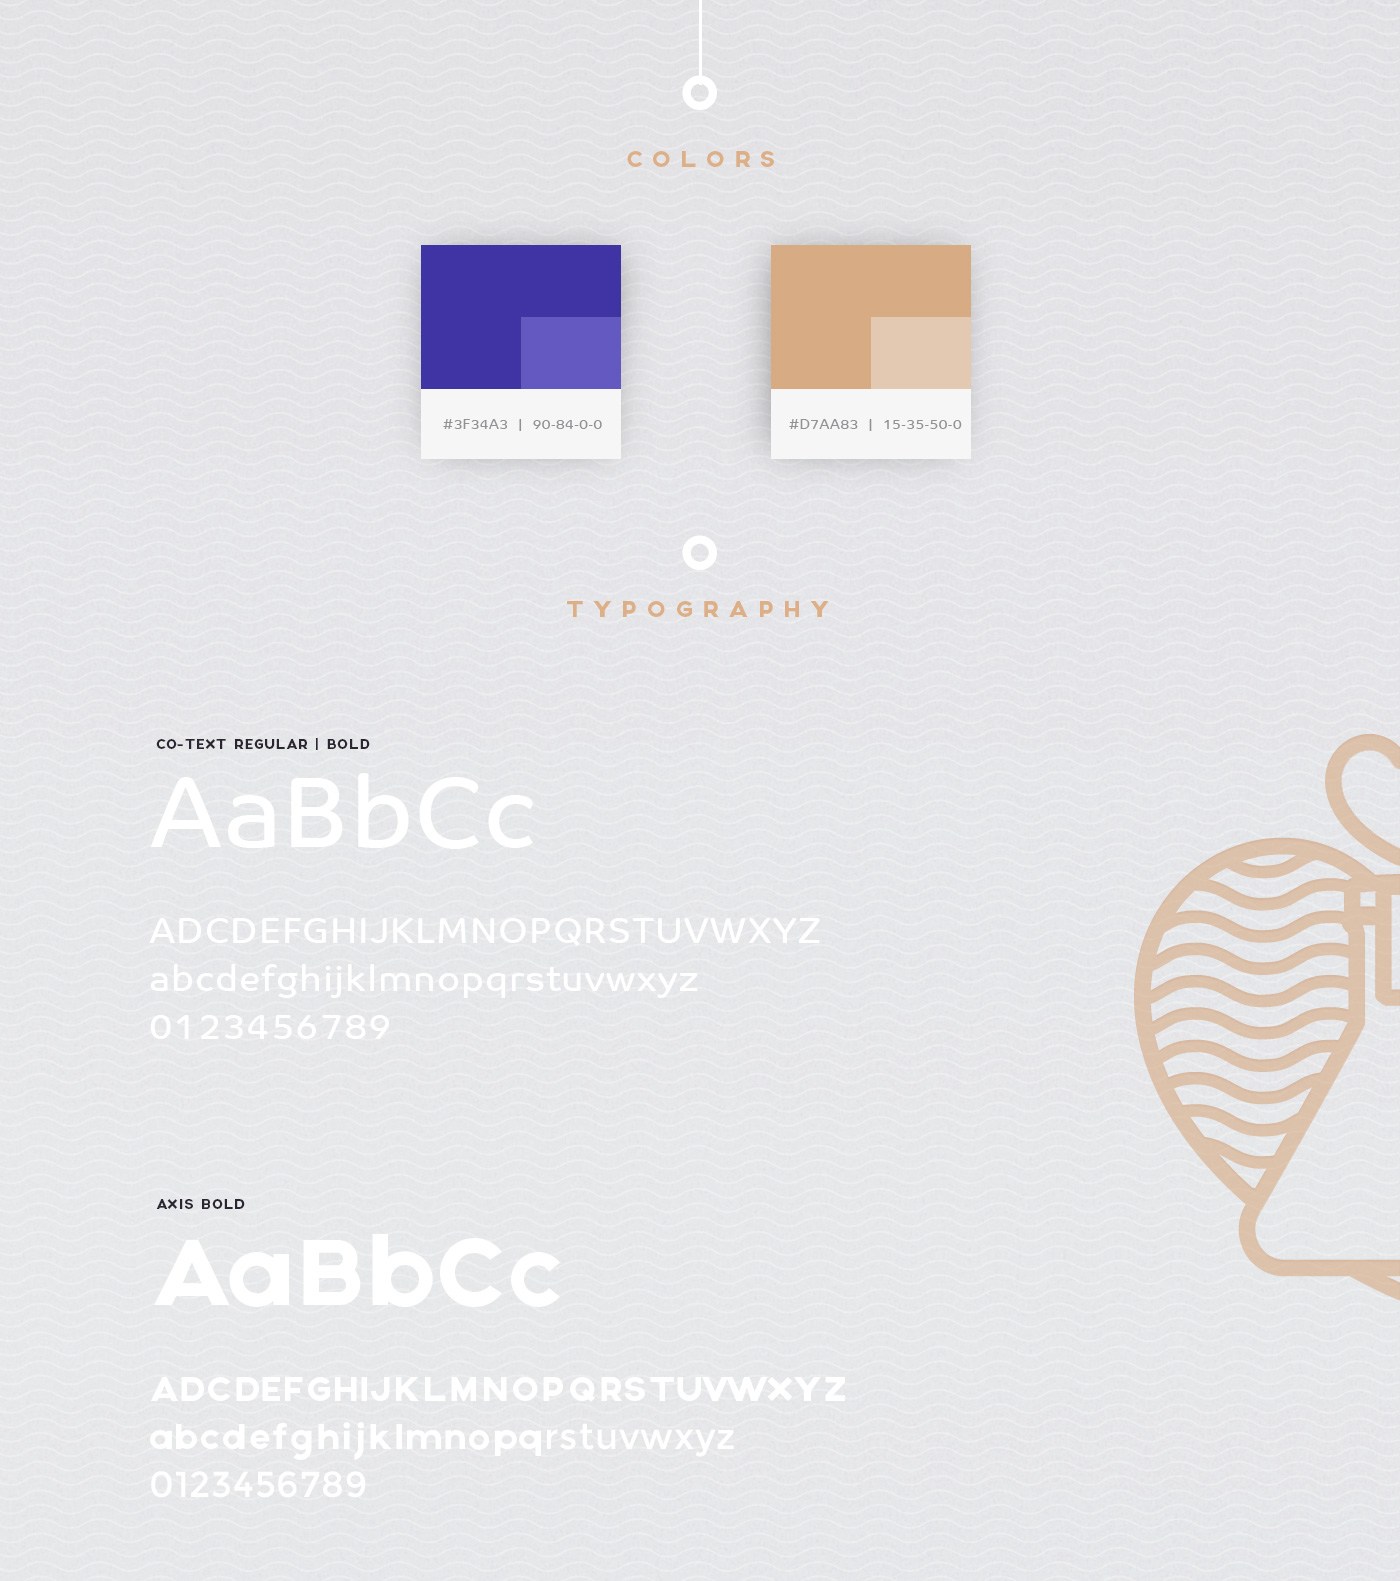 Colors and typography